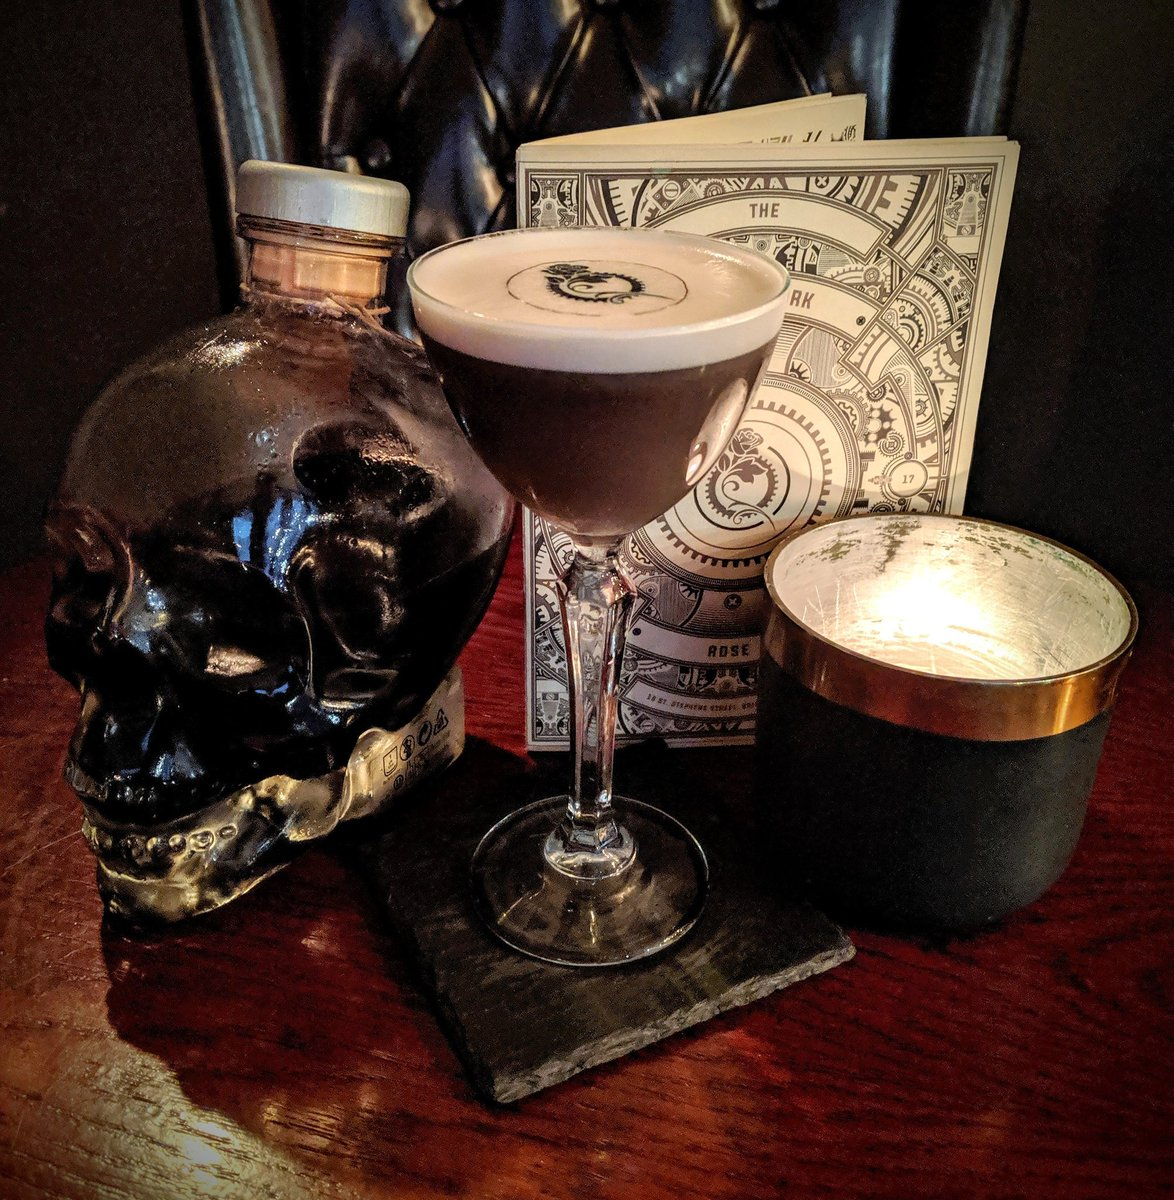 #Steampunk ⚙️ Awesome of the Day: New Menu at #ClockworkRose #Cocktail 🍸 #Bar in #Bristol #England 🇬🇧 via @ClockworkRoseCo #SamaPlaces 🗺️